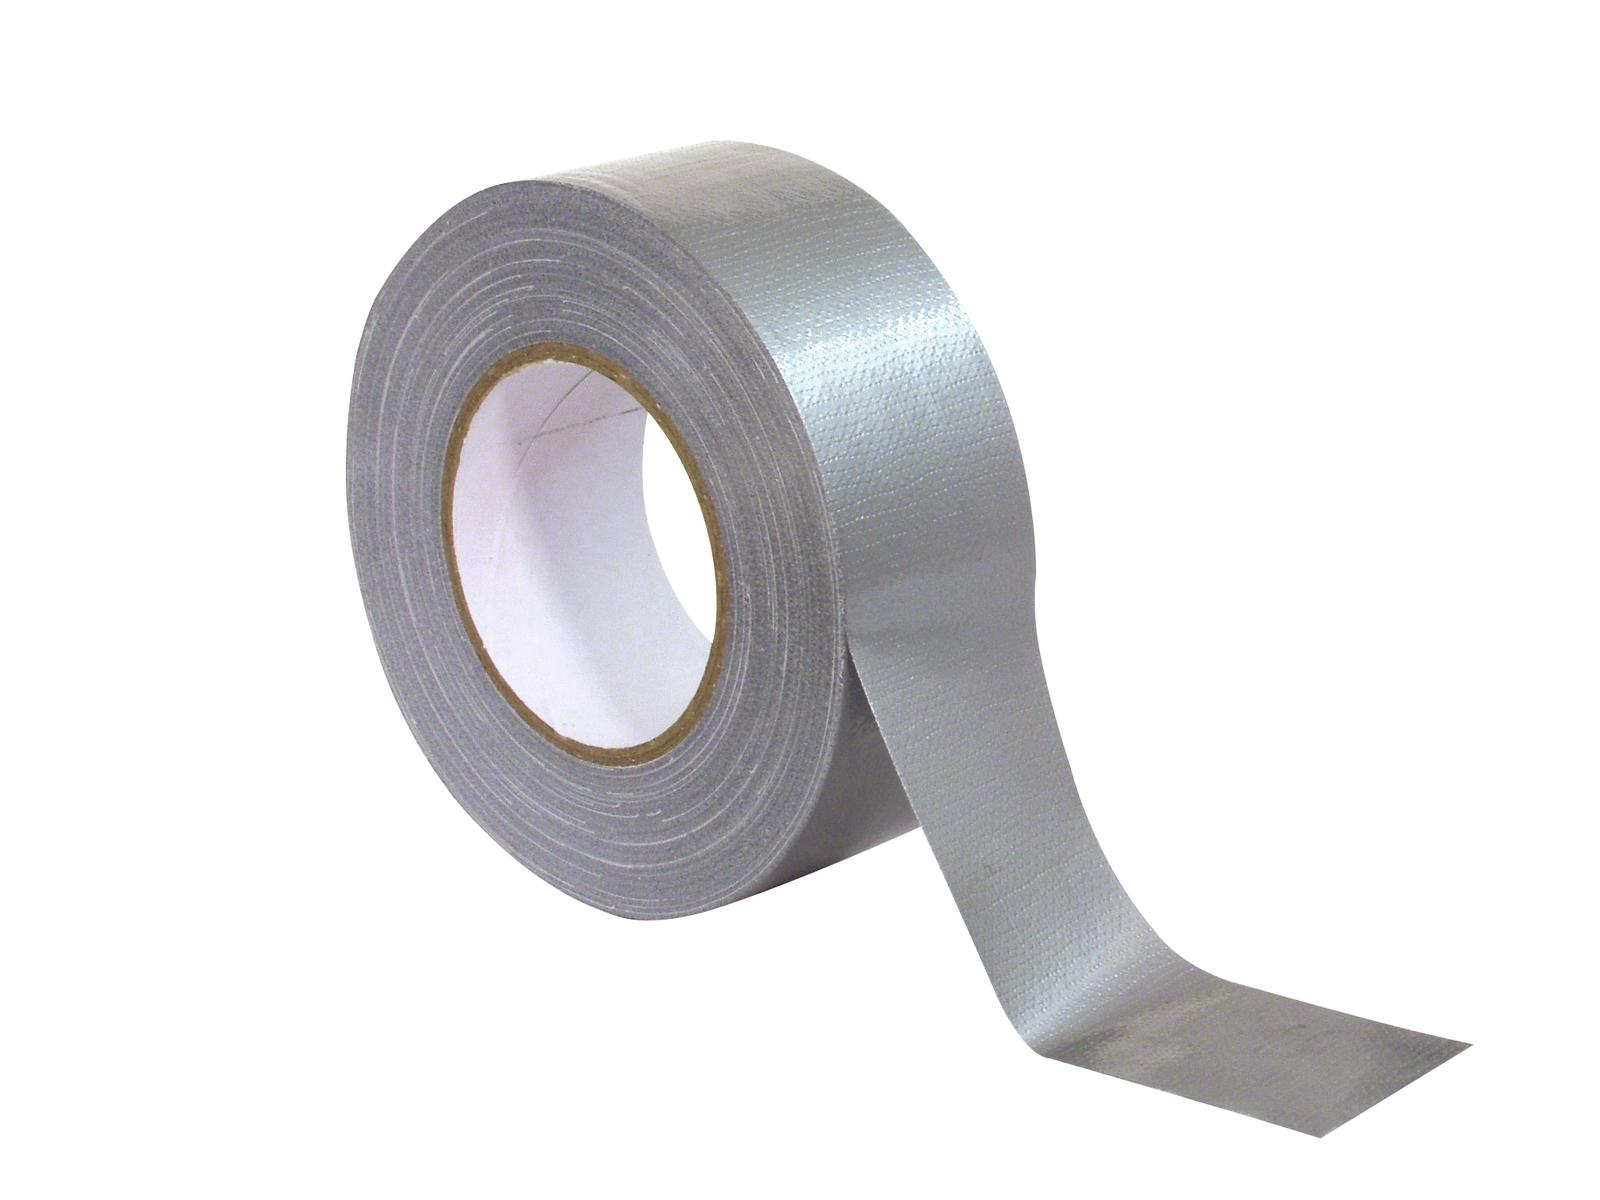 ACCESSORIO ai gaffa Tape Standard 48mm x 50m argento